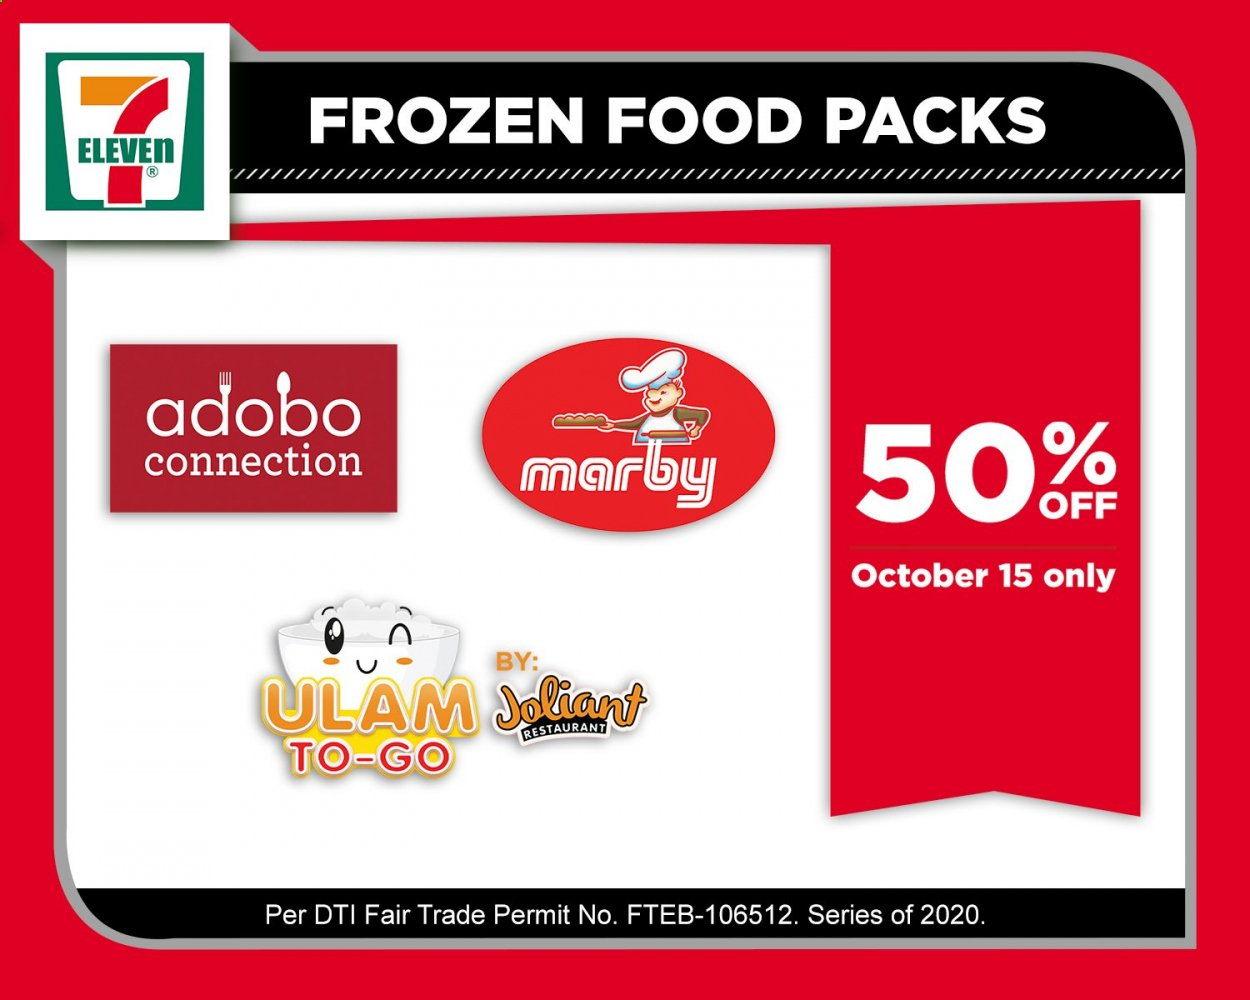 7 Eleven offer  - 15.10.2020 - 15.10.2020 - Sales products - adobo sauce, frozen. Page 1.